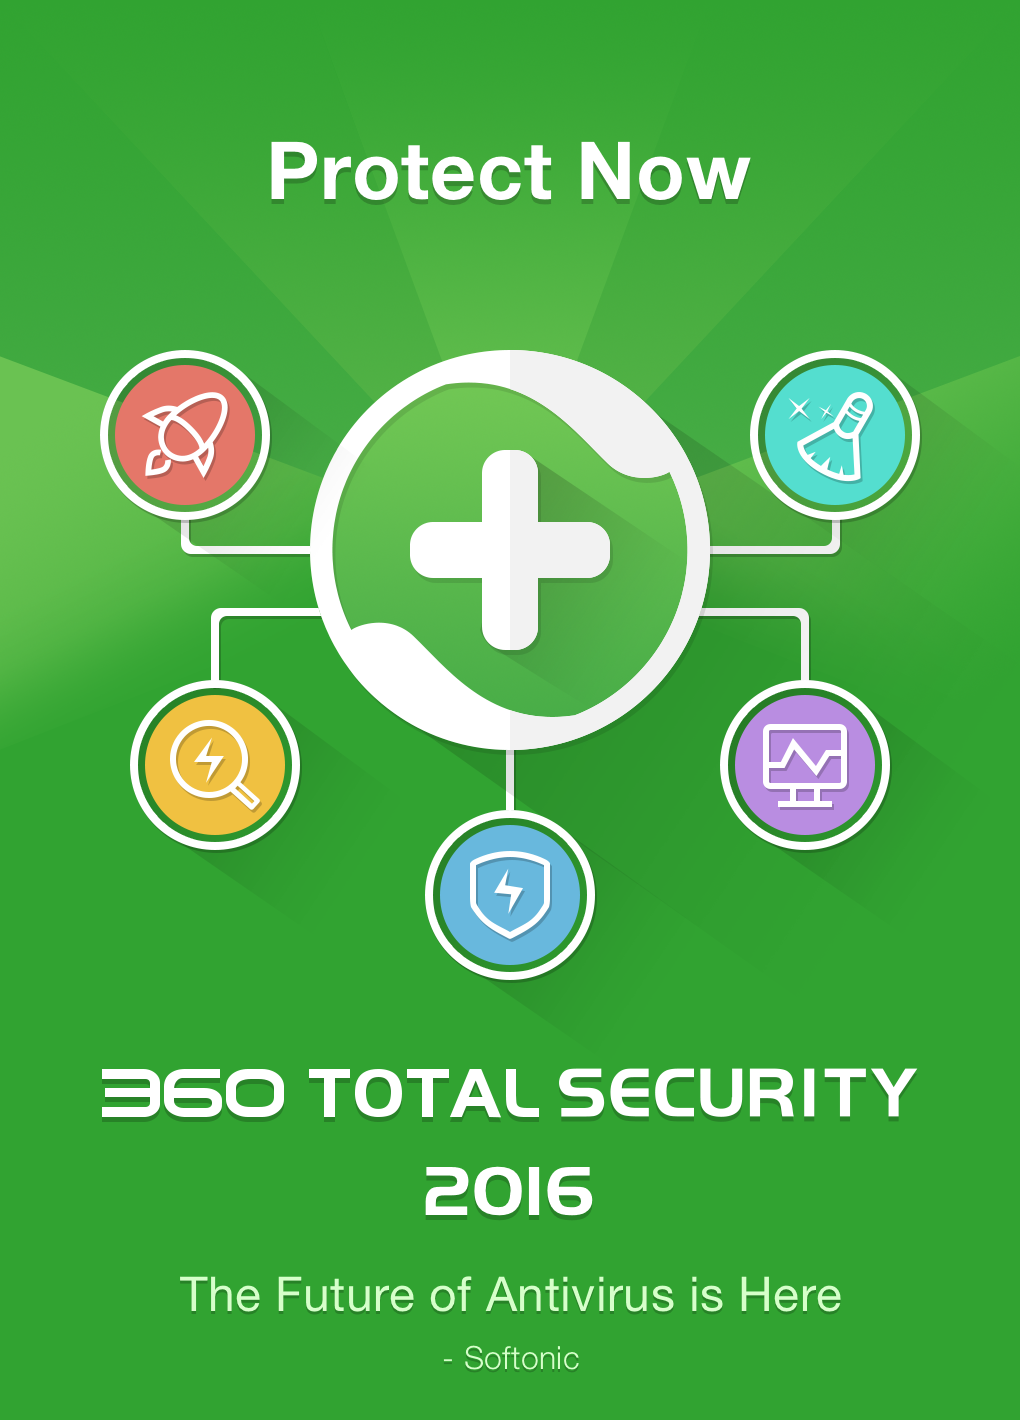 360-total-security-free-antivirus-internet-security-for-pc-download